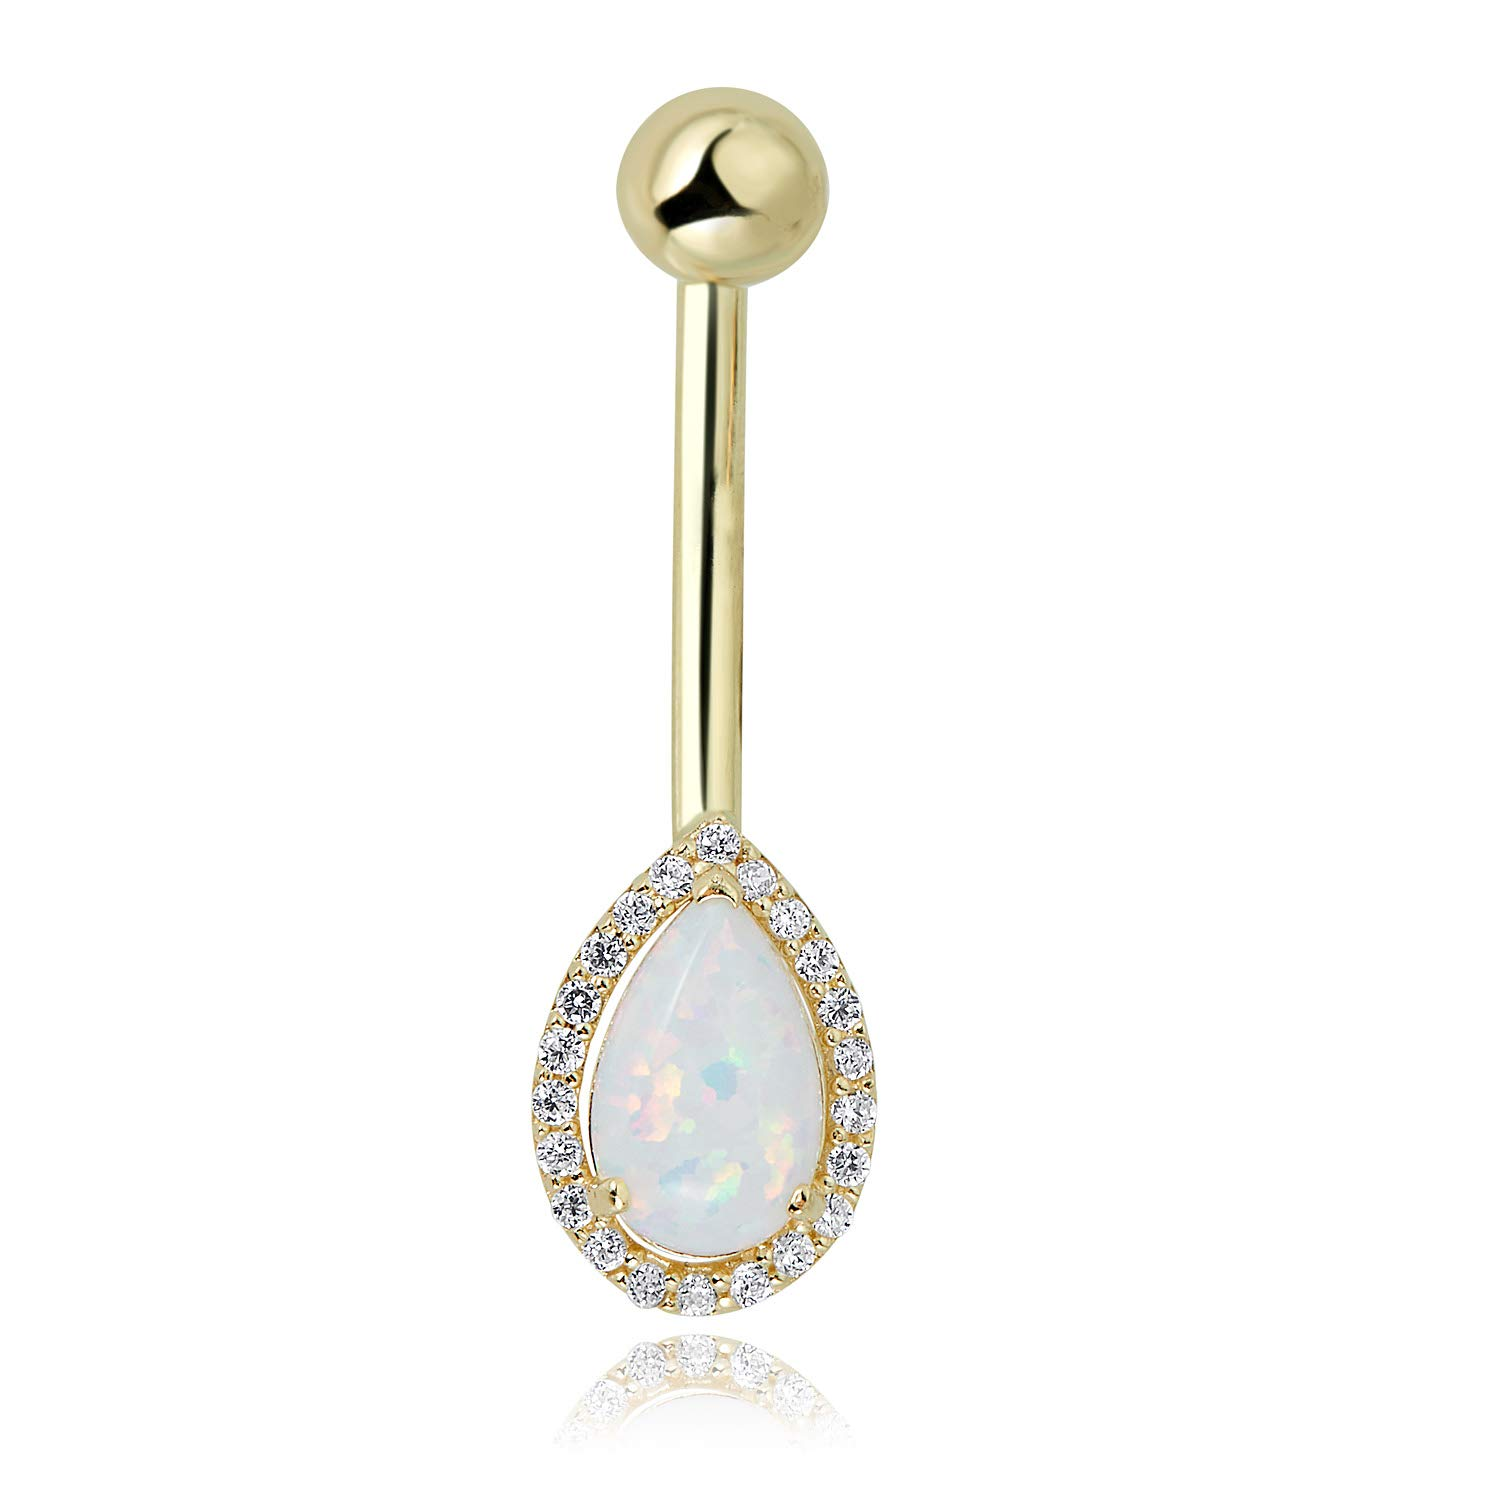 10K Yellow Gold Pear-shaped Created Opal with Simulated Diamond CZ Halo Belly Button Ring Body Jewelry - 014 Gauge by AVORA